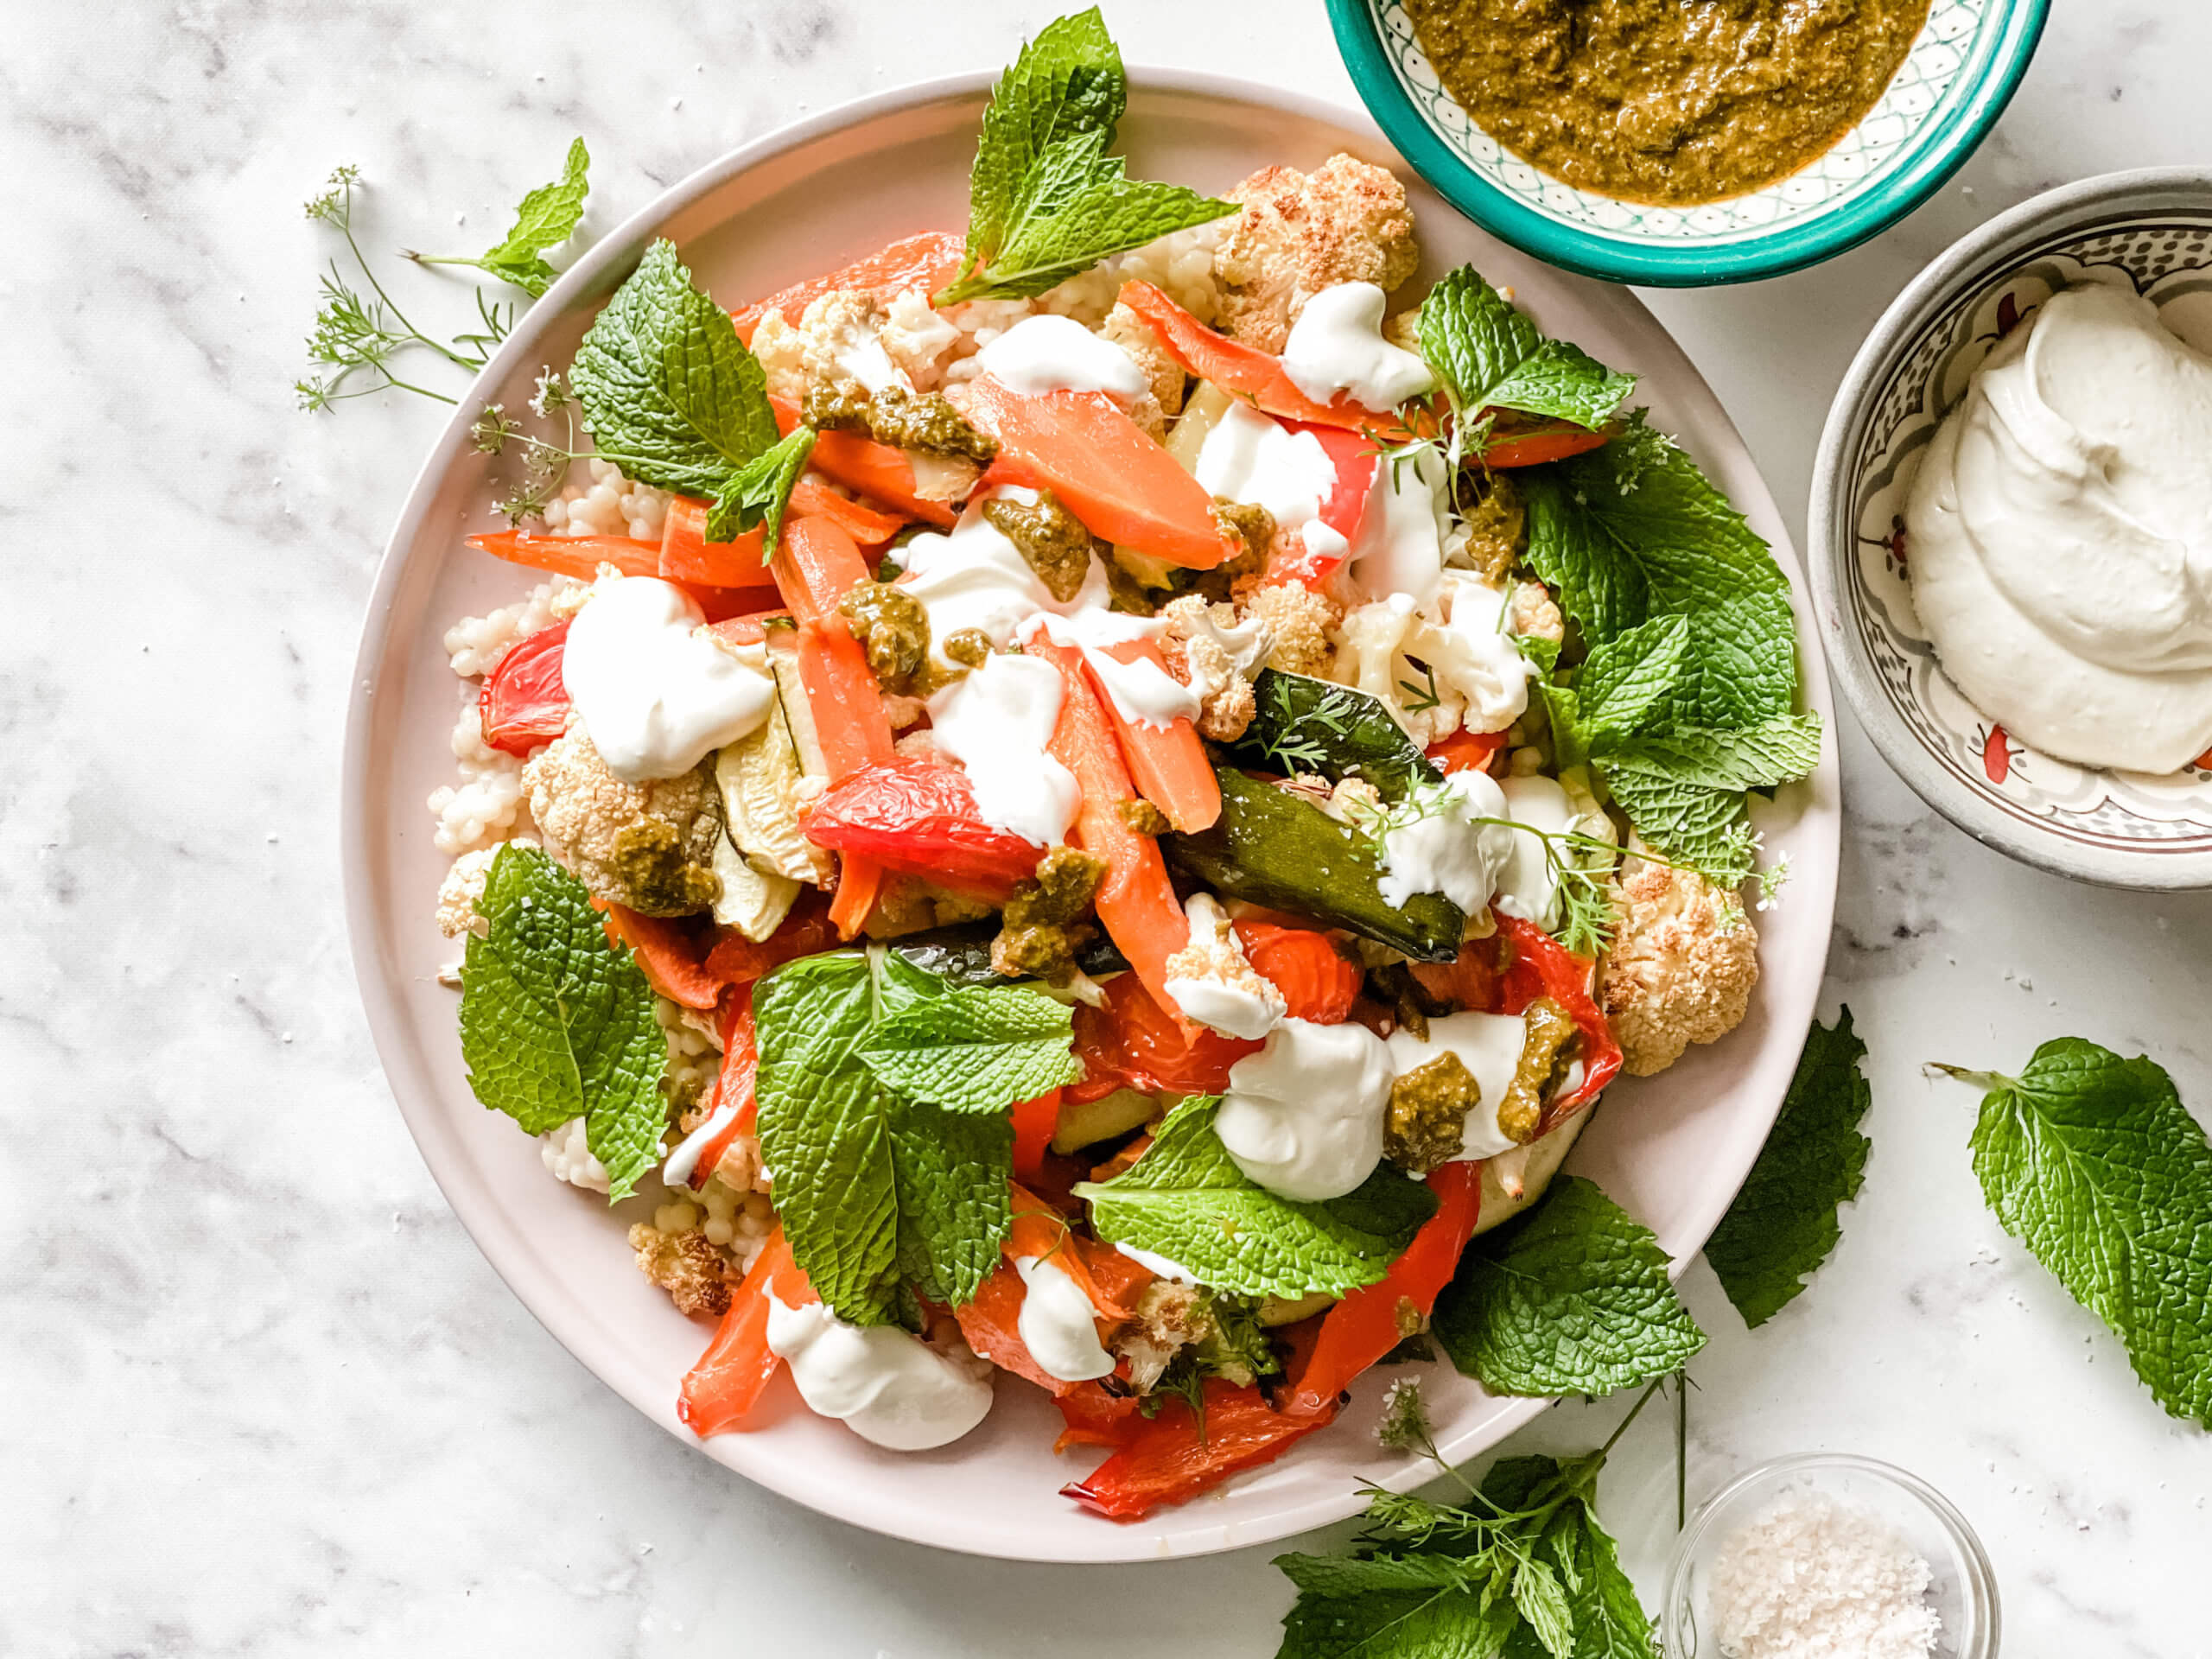 , Slow roasted vegetables with minty chermoula and pearl couscous